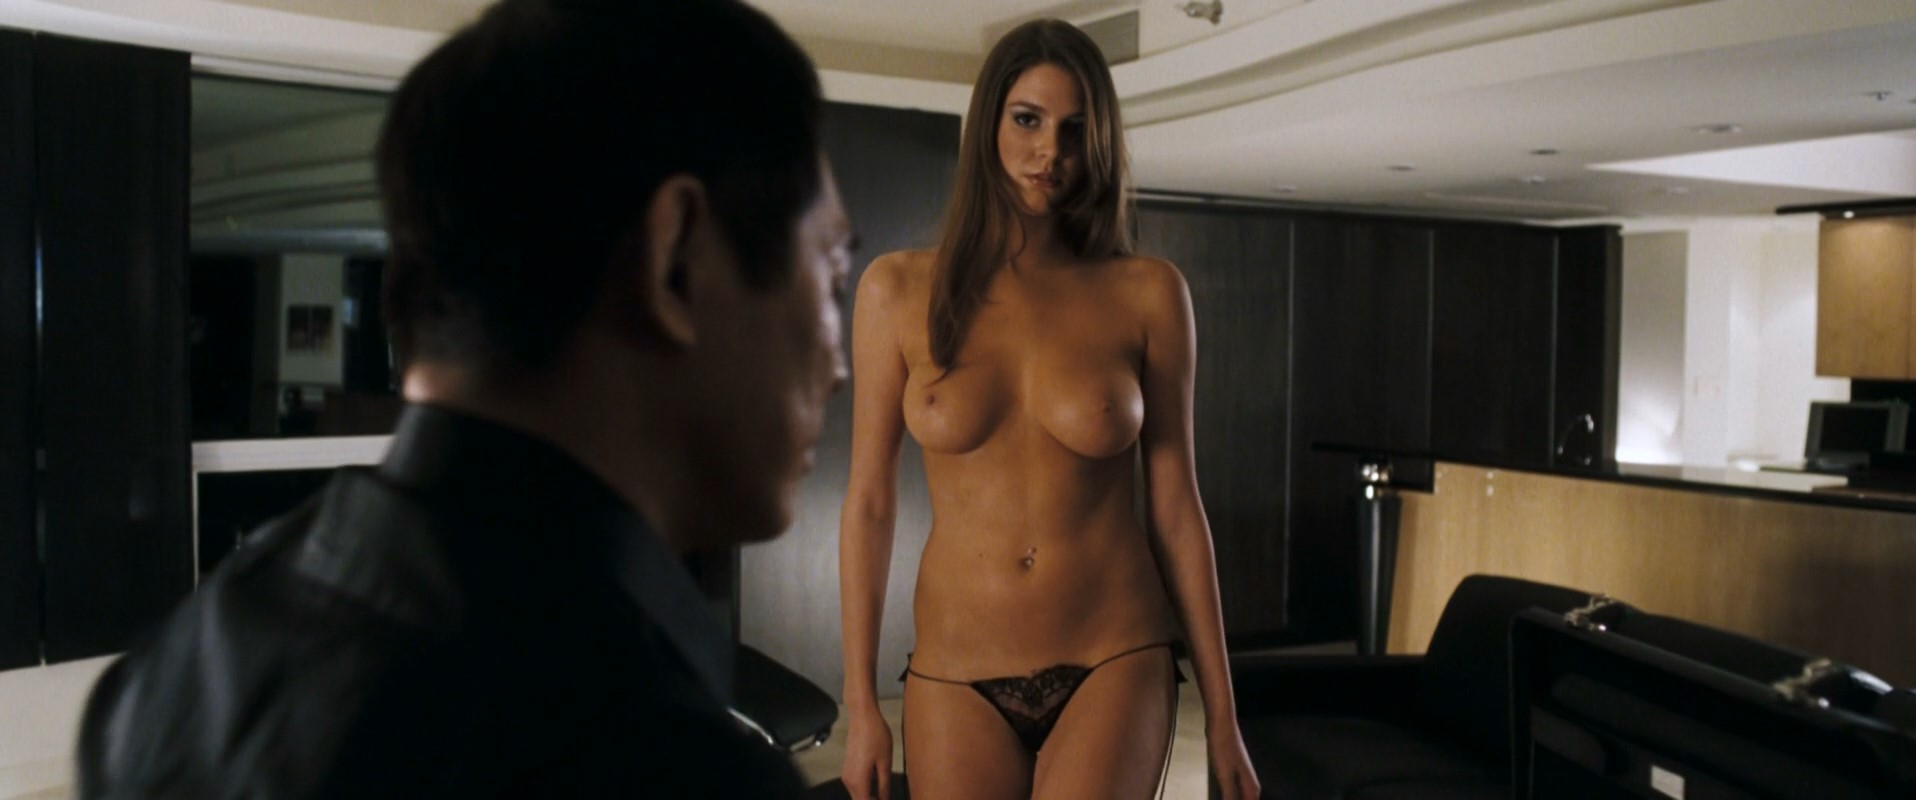 Meghan flather nude war 2007 hd naked (58 photos), Topless Celebrity pictures